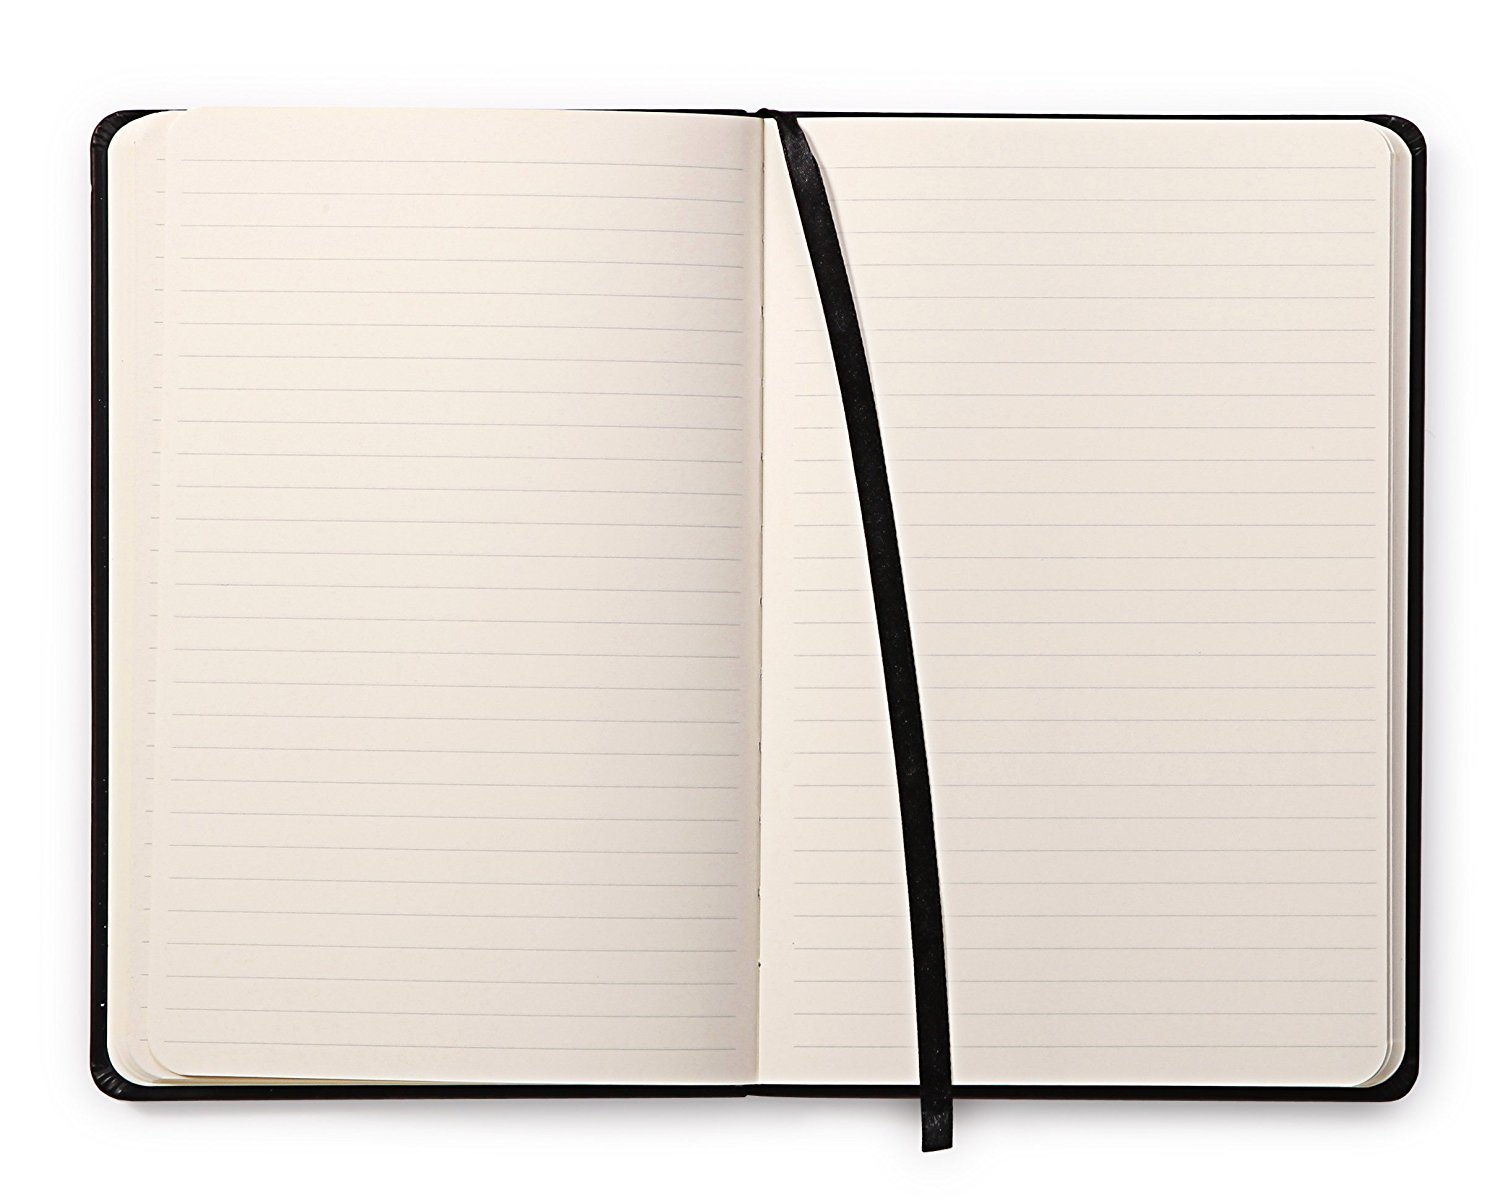 Rhodia Webnotebook Webbies - Lined 96 sheets - 5 1/2 x 8 1/4 - Black Cover by Rhodia